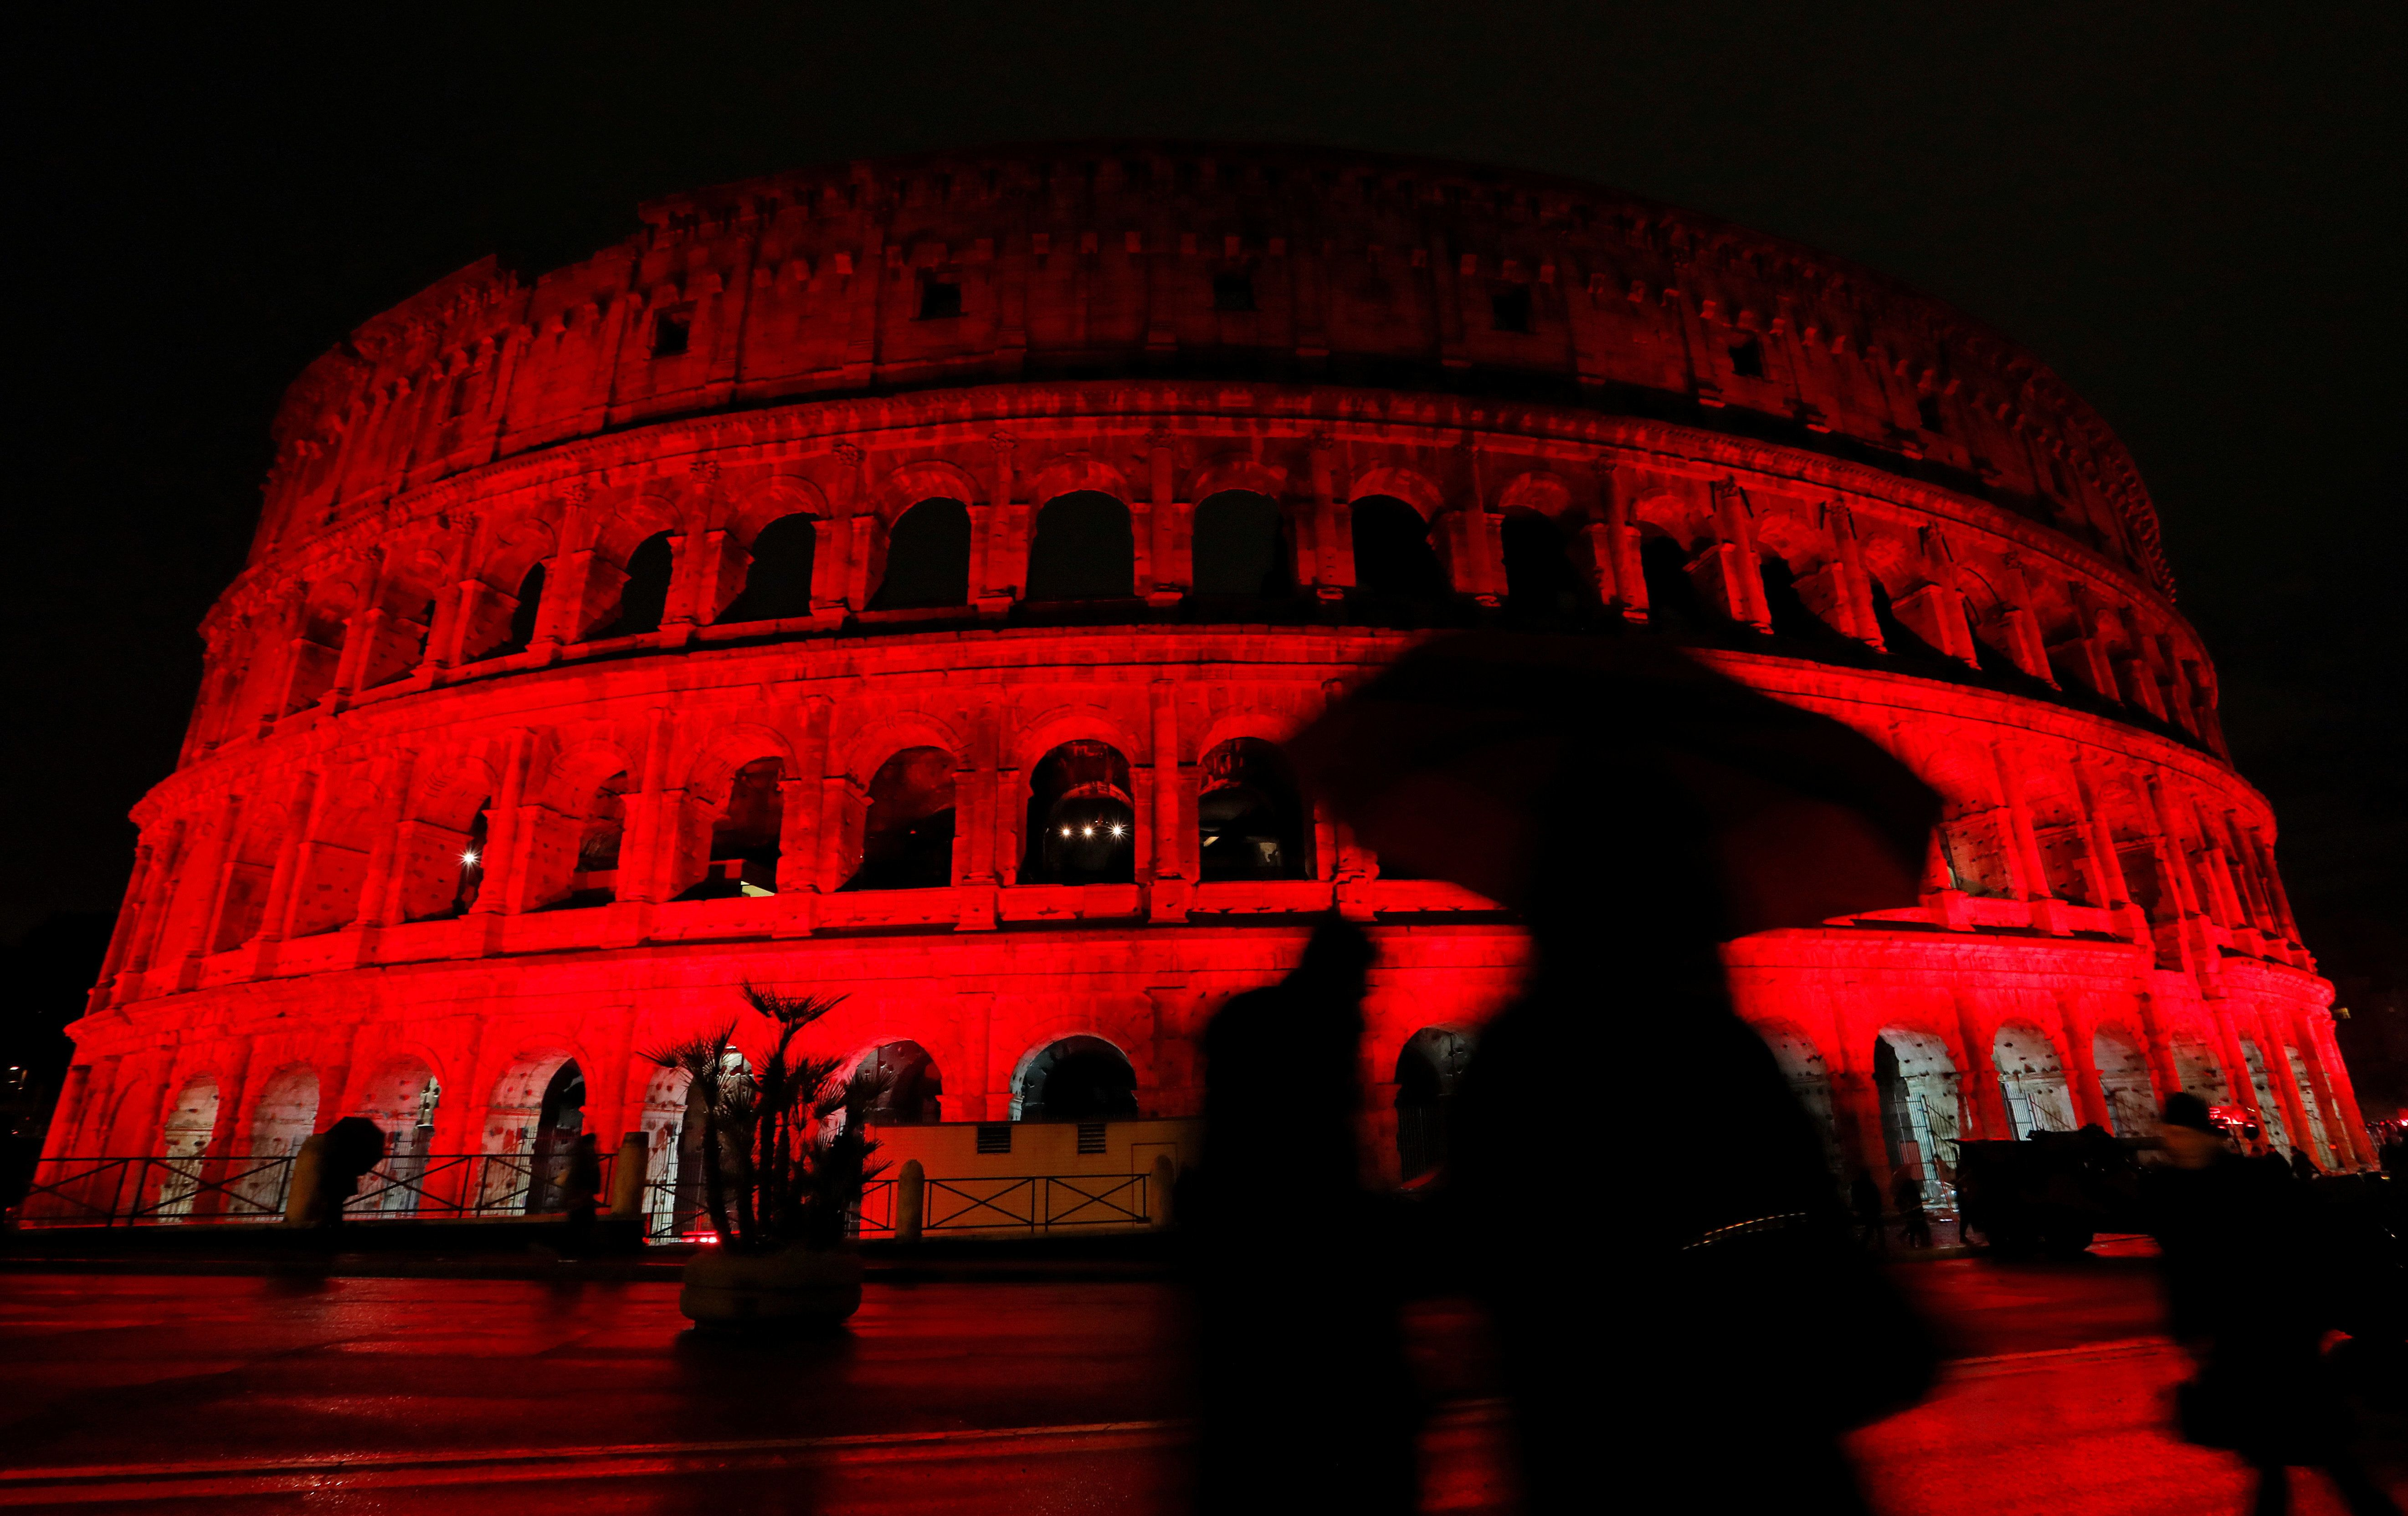 Colosseum In Rome Turns Red In Protest Of Pakistan's Blasphemy Law